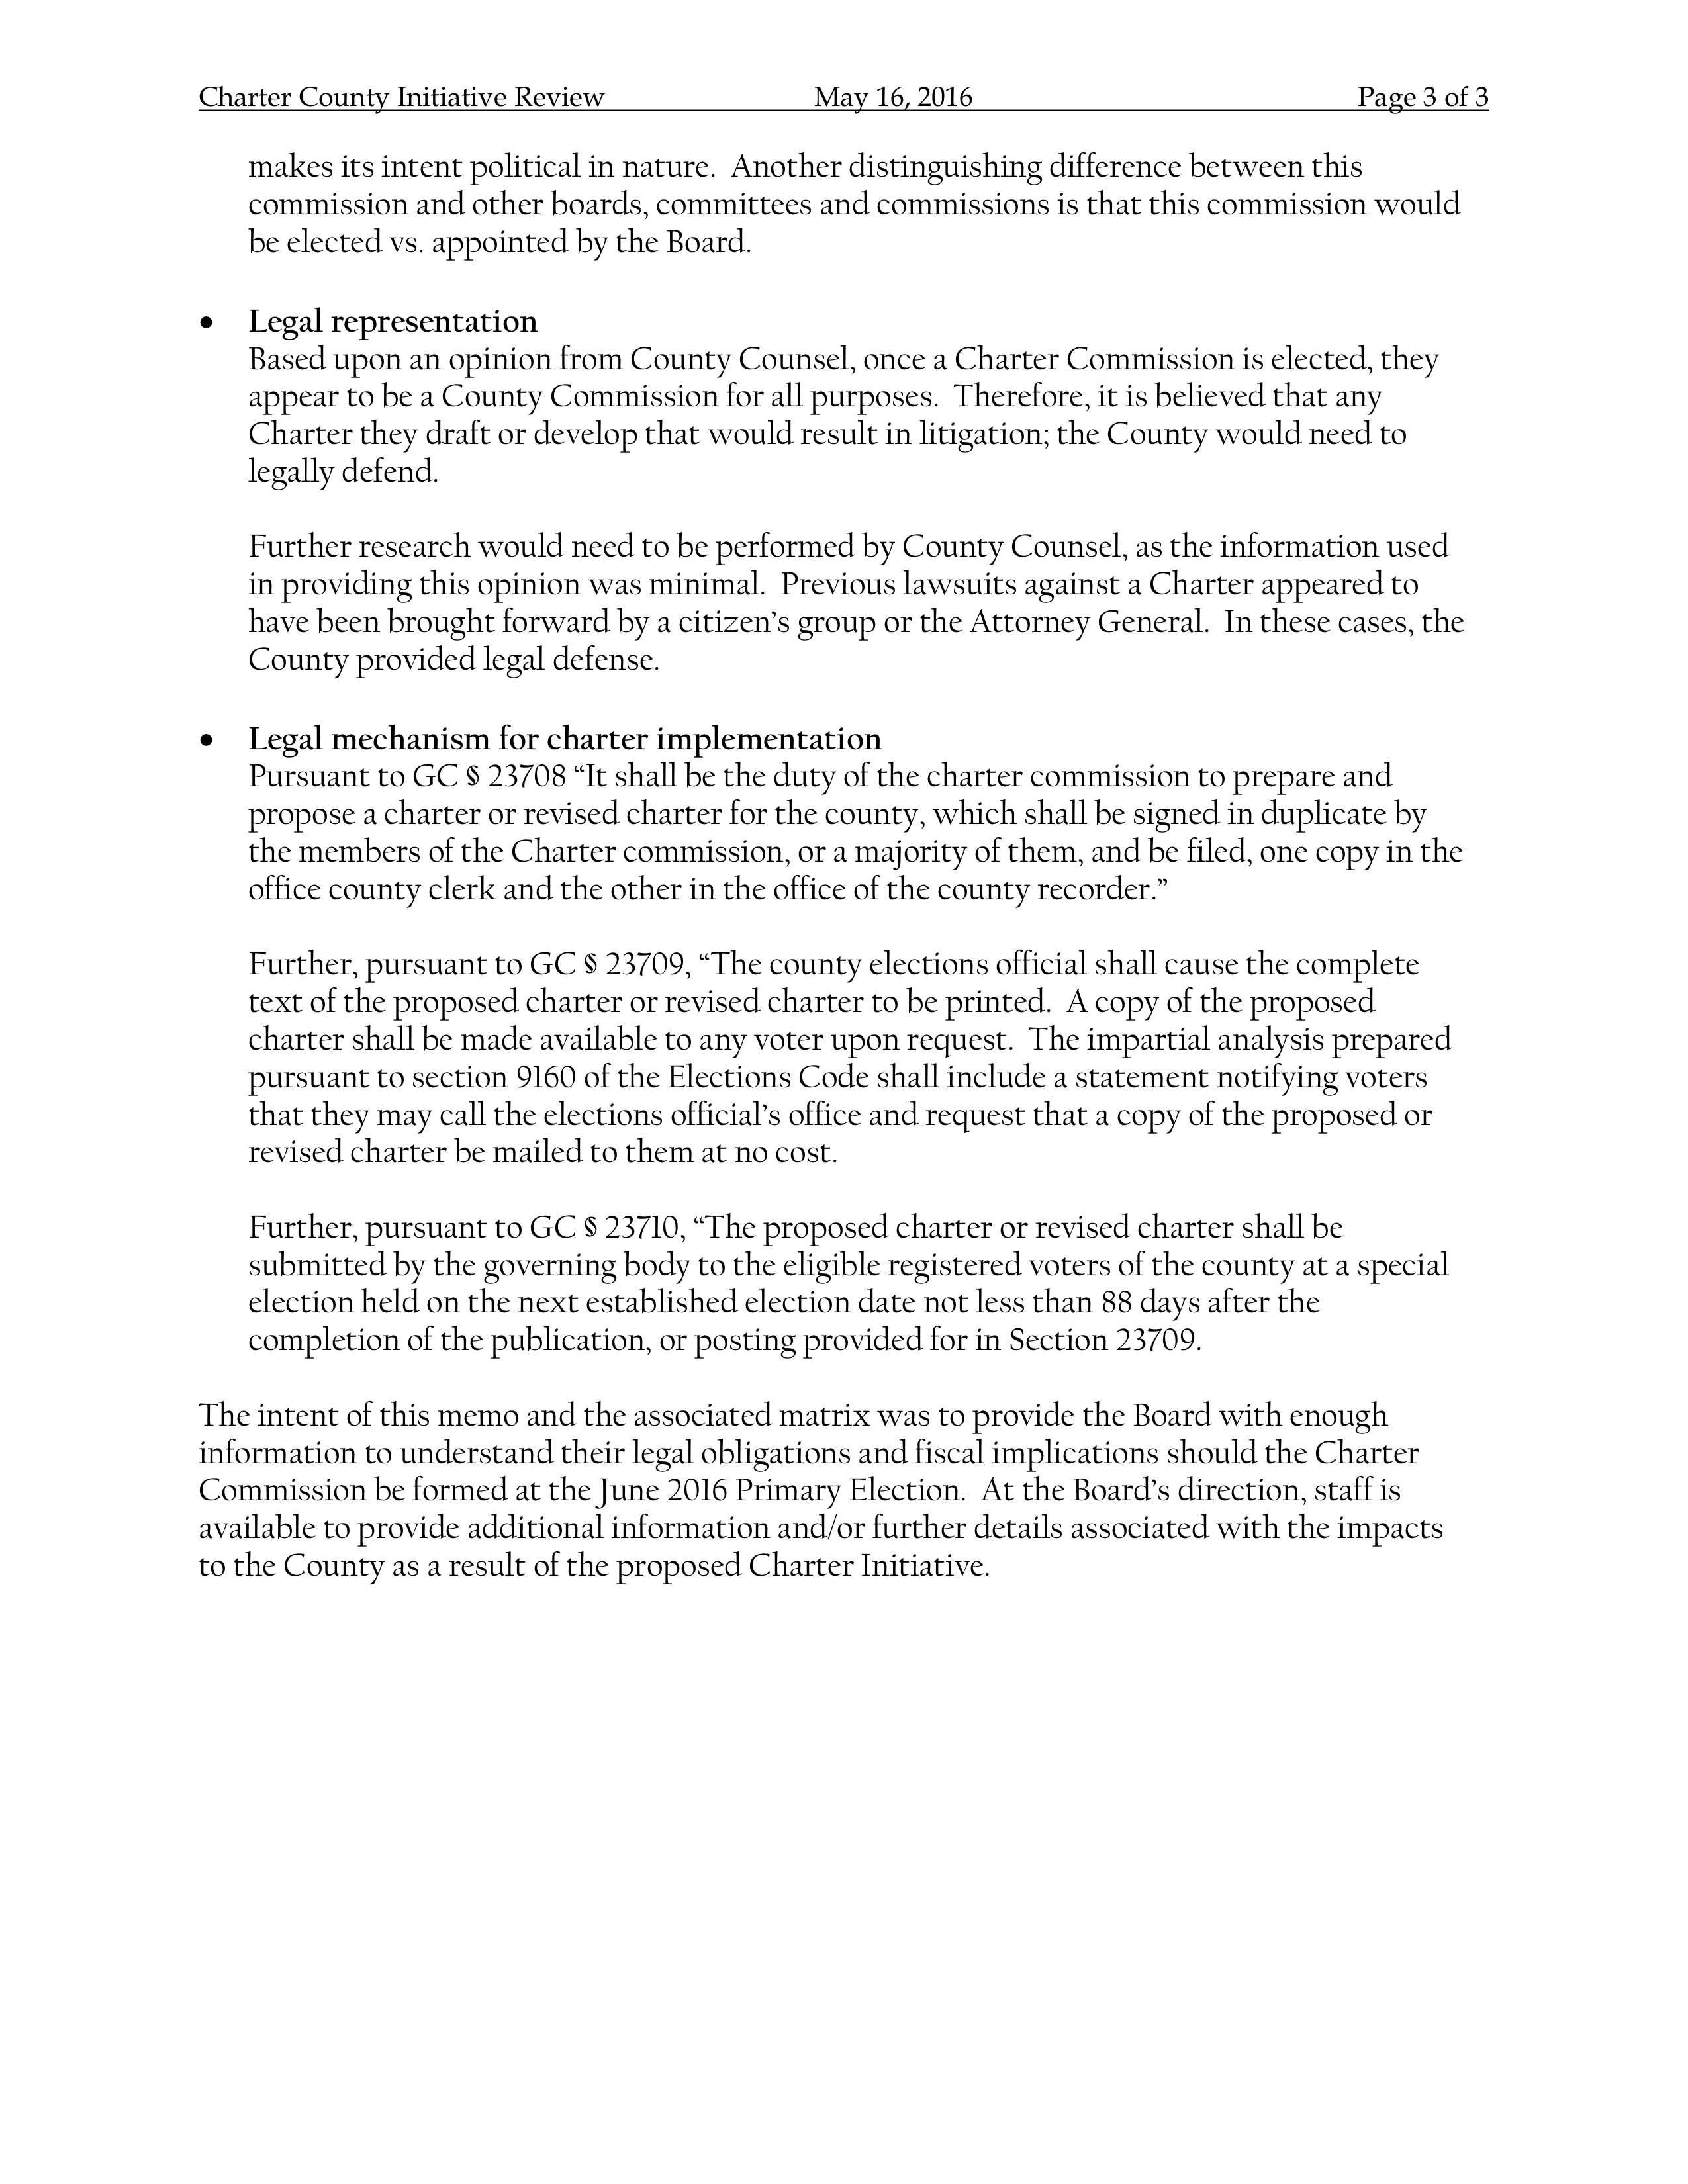 16-05-16 Potential Fiscal Impact of Measure W - P.3